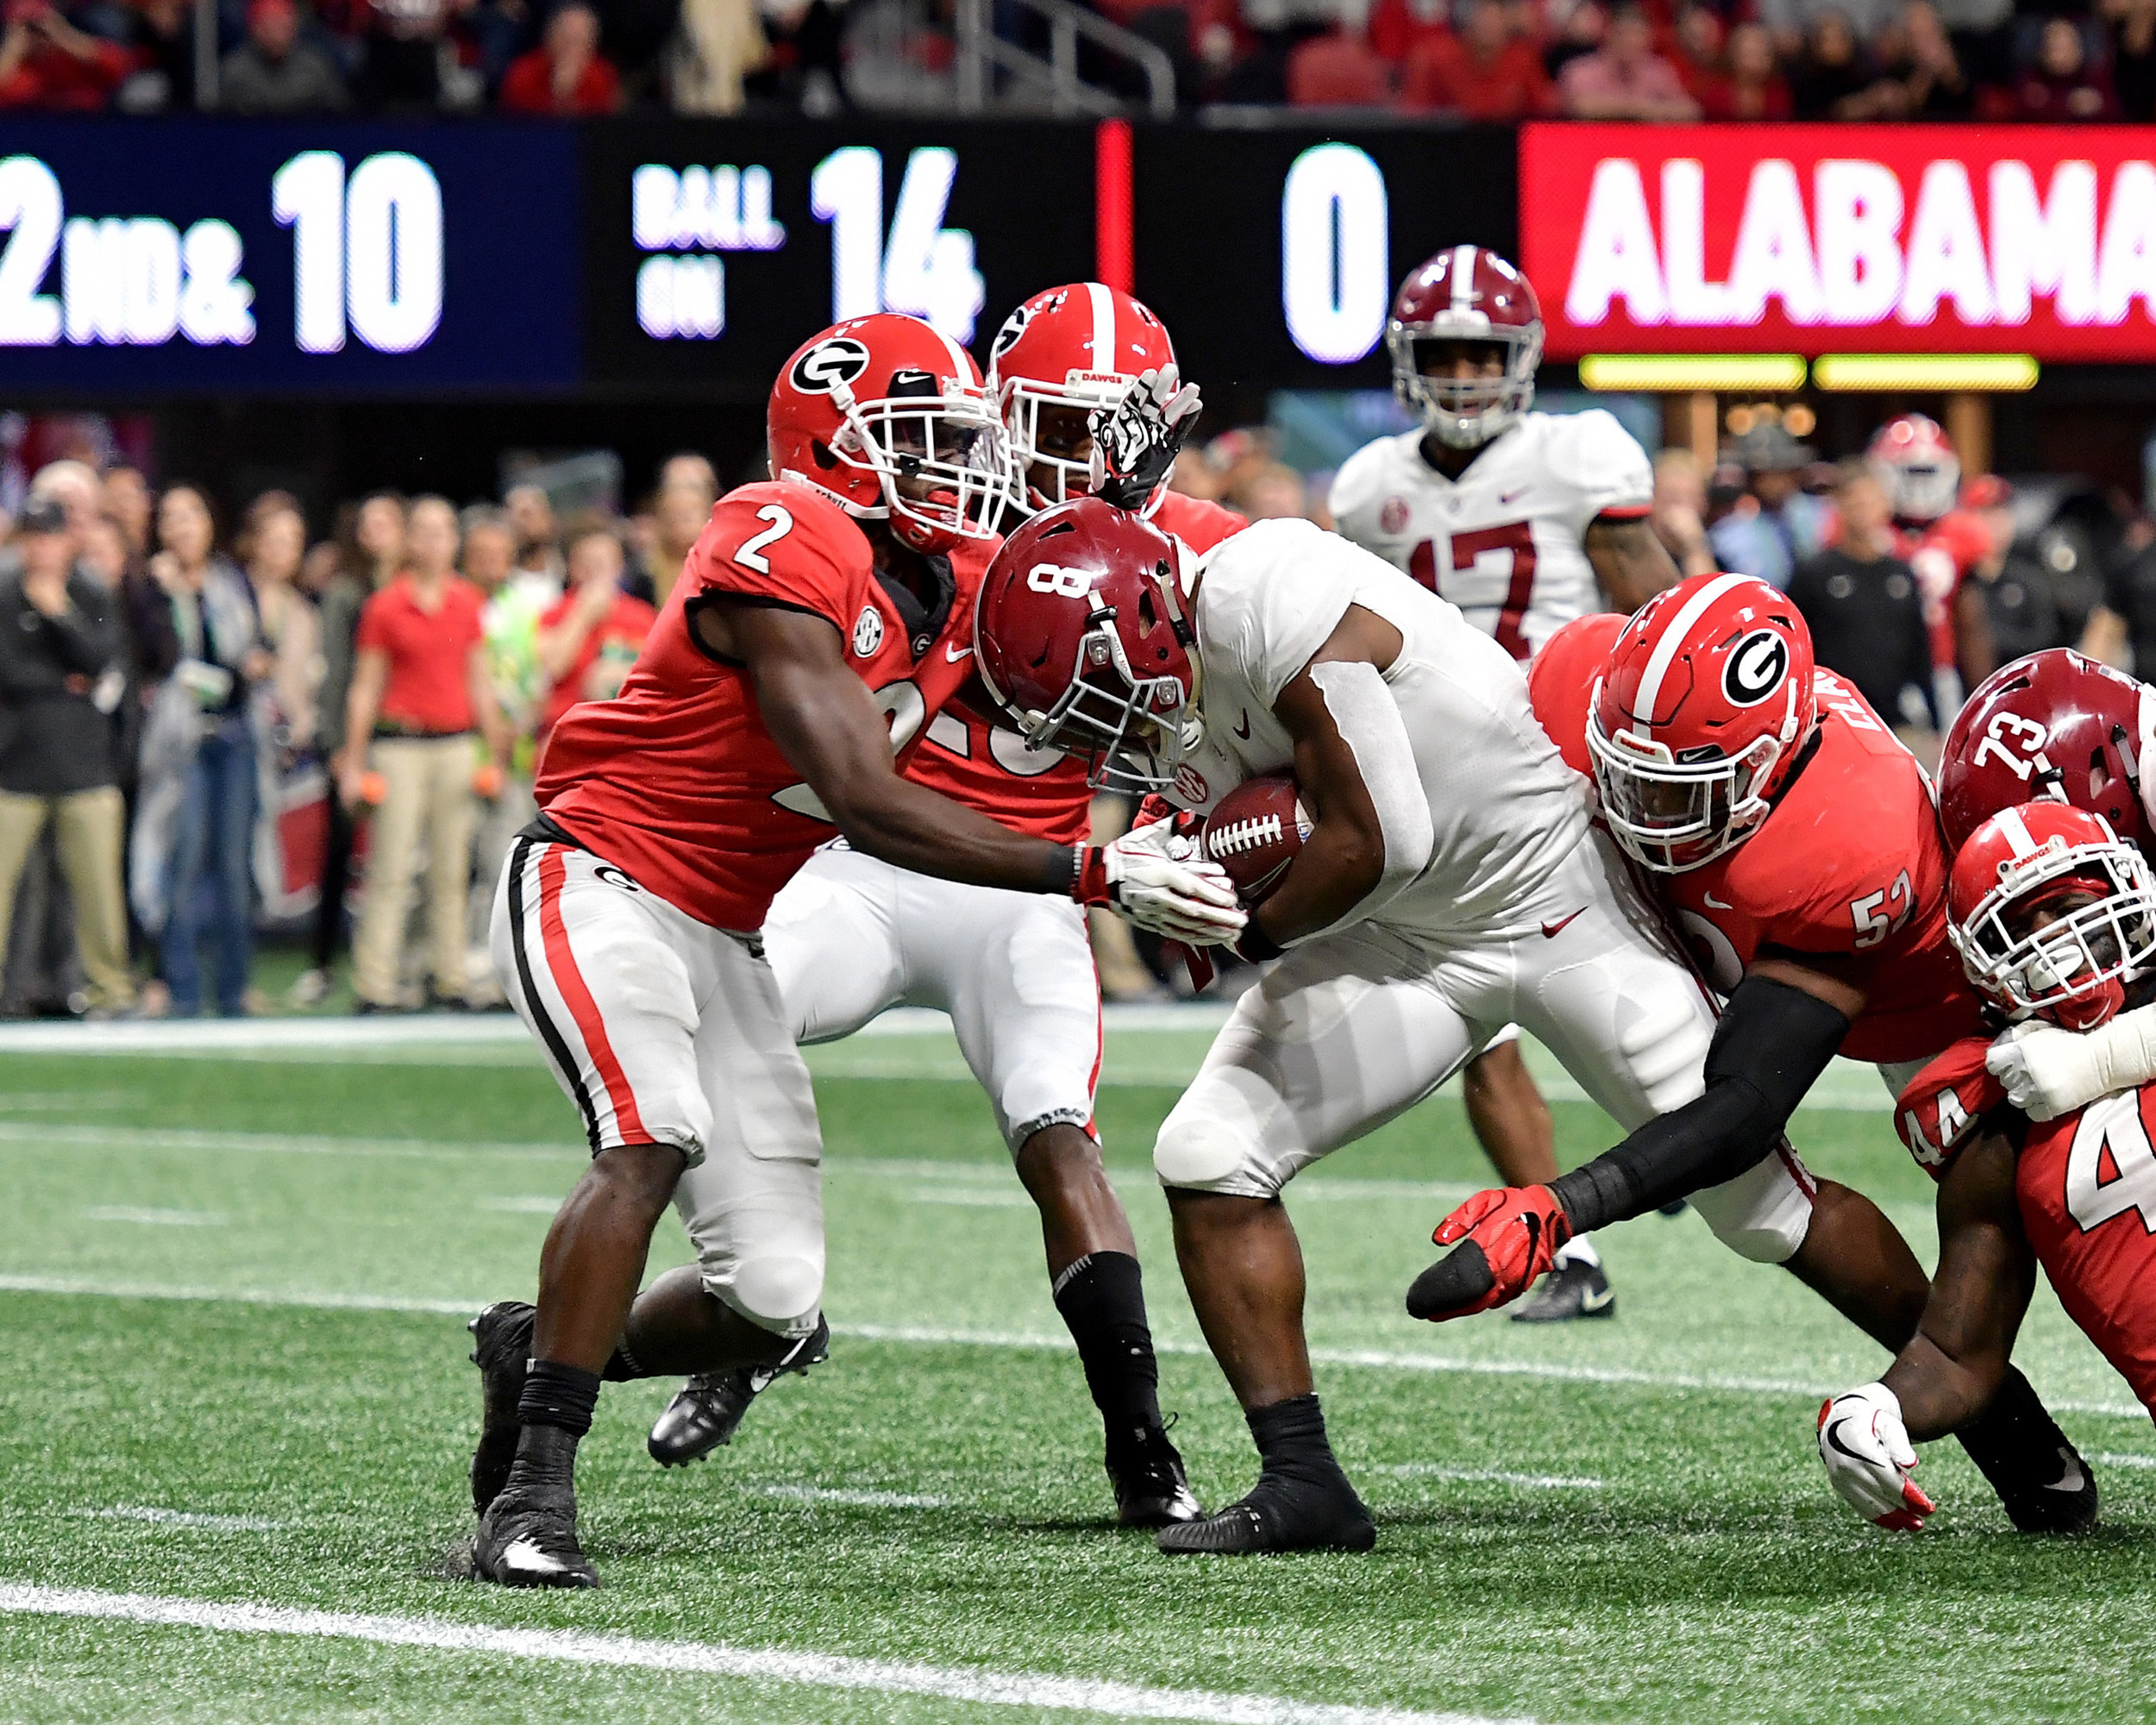 Alabama Crimson Tide running back Josh Jacobs (8), and eventual game MVP, on his way to a touchdown during the first half of the 2018 SEC Championship football game against the Georgia Bulldogs at Mercedes-Benz Stadium in Atlanta, Ga., on Dec. 1, 2018. Alabama wins 35-28. (Photo by Lee Walls)